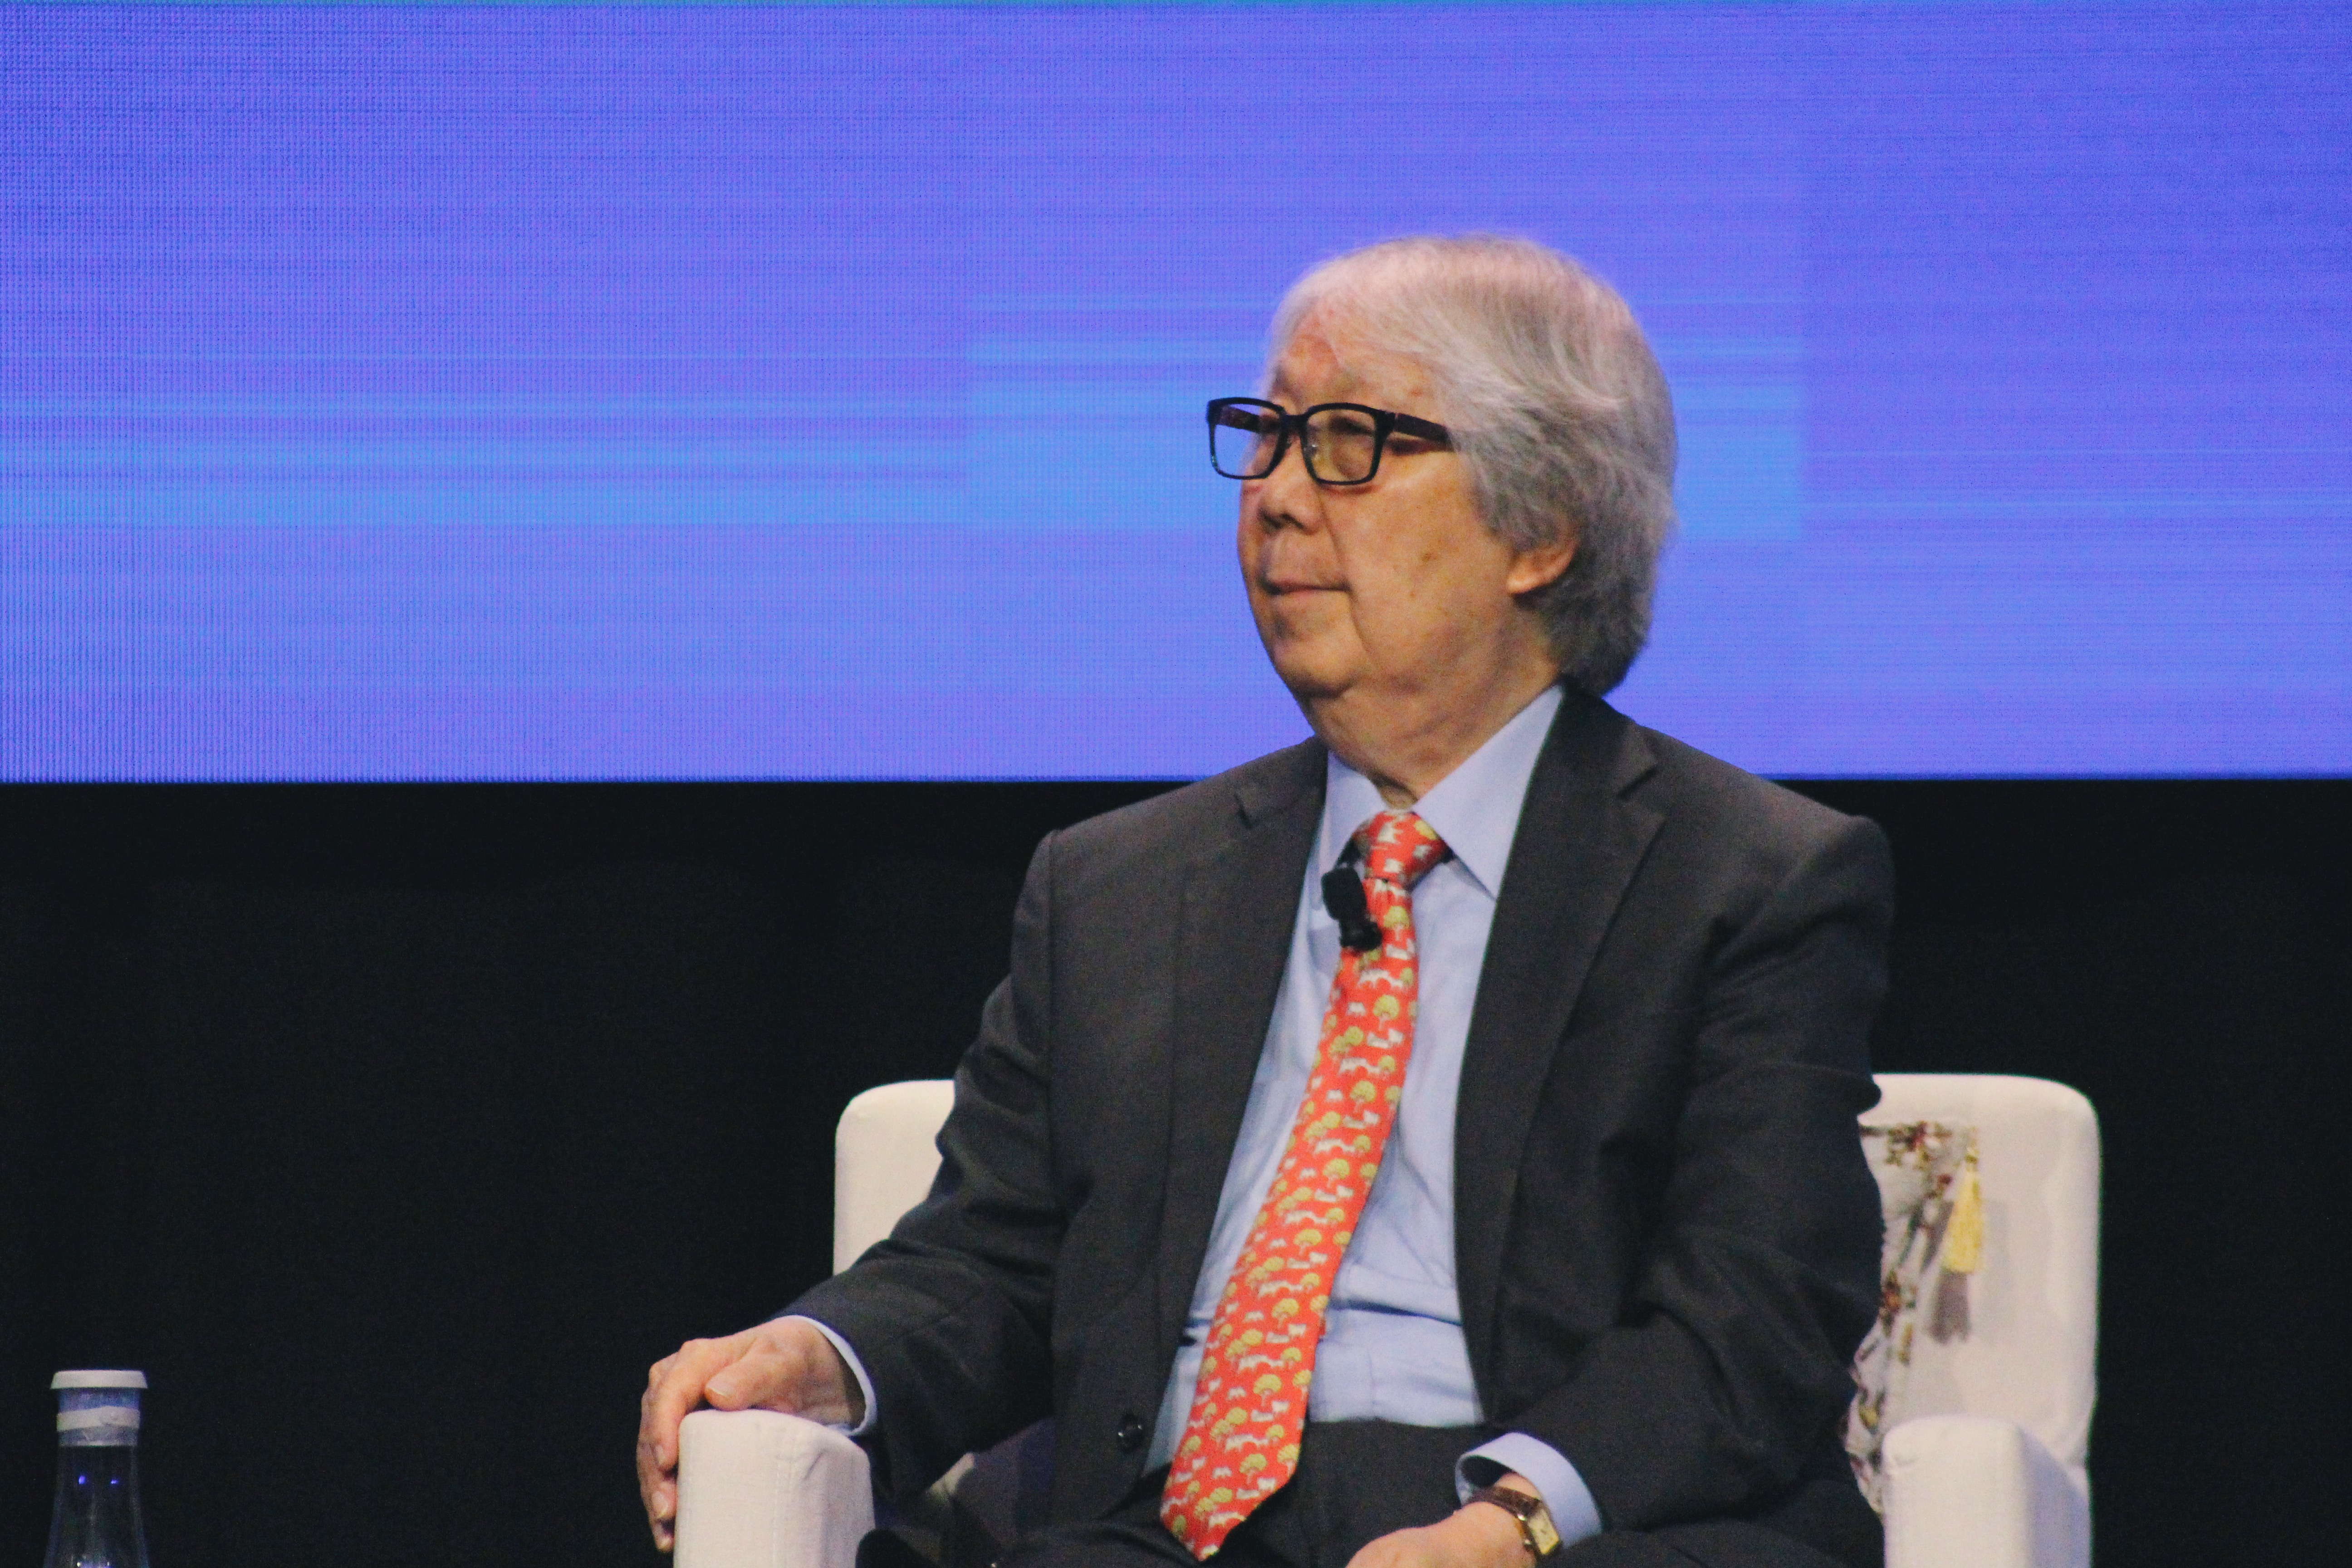 Singapore's Ambassador-at-Large, Professor Tommy Koh. Photo: Connected to India.